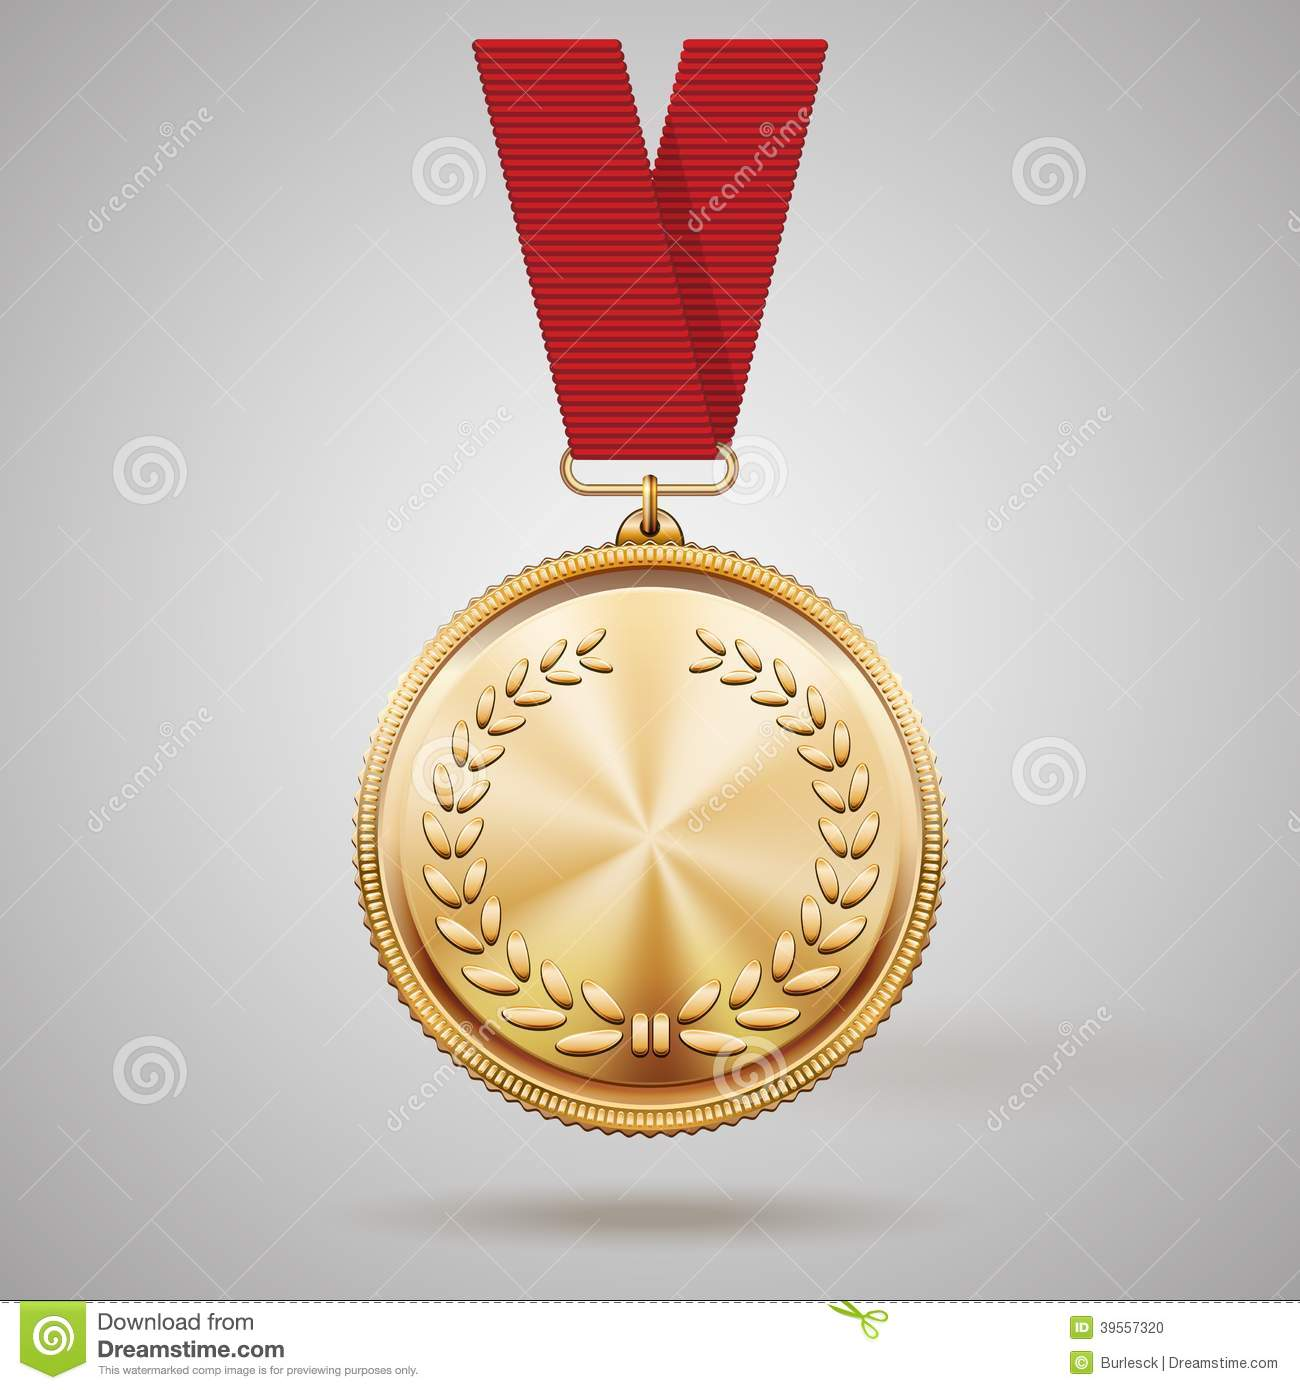 Vector Gold Medal On Red Ribbon Stock Vector ...